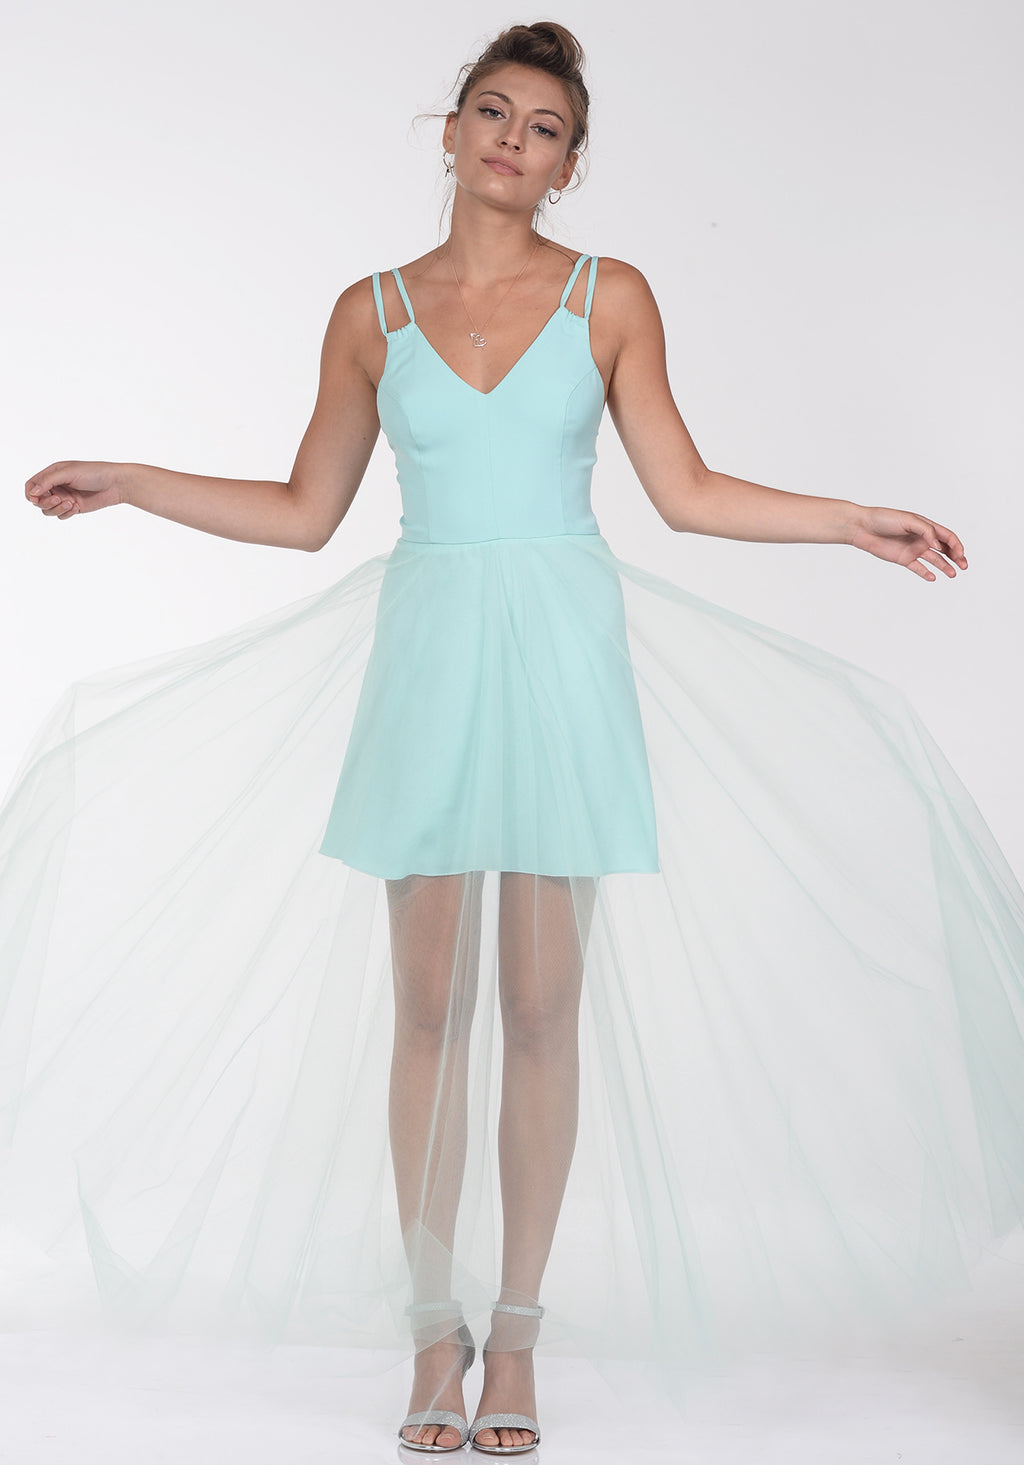 Tulle party dress - שמלת בל טול תכלת, שמלת ערב, מקסי